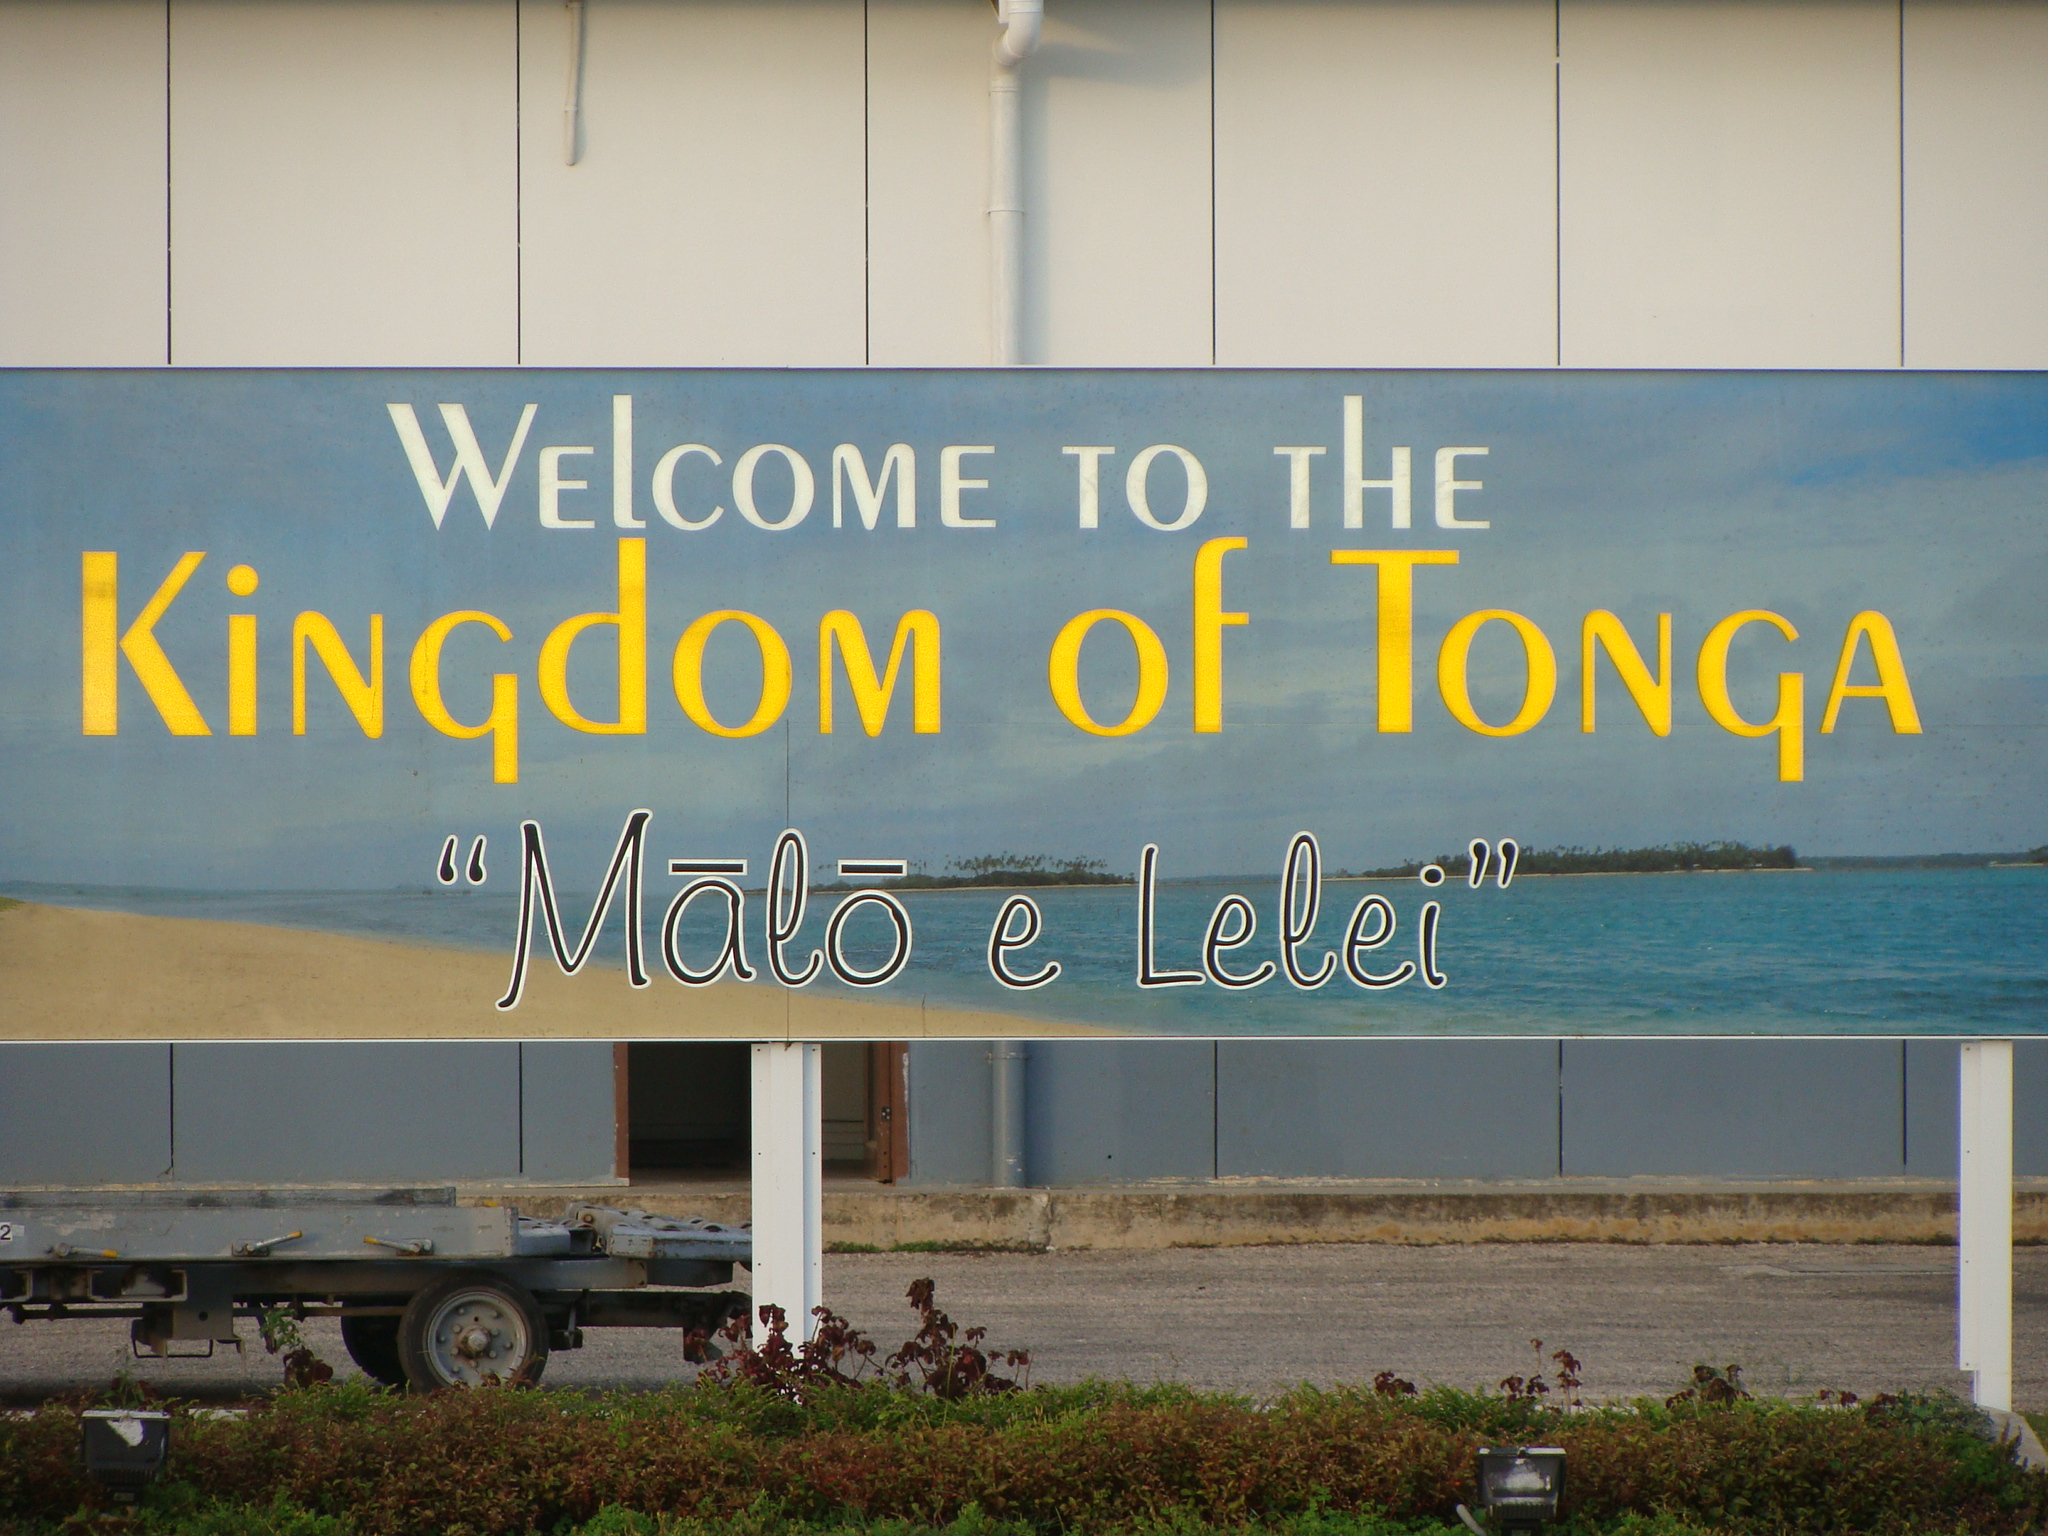 """Malo e Lelei"" welcomes visitors to the Kingdom of Tonga • Courtesy Lindsey Christine"